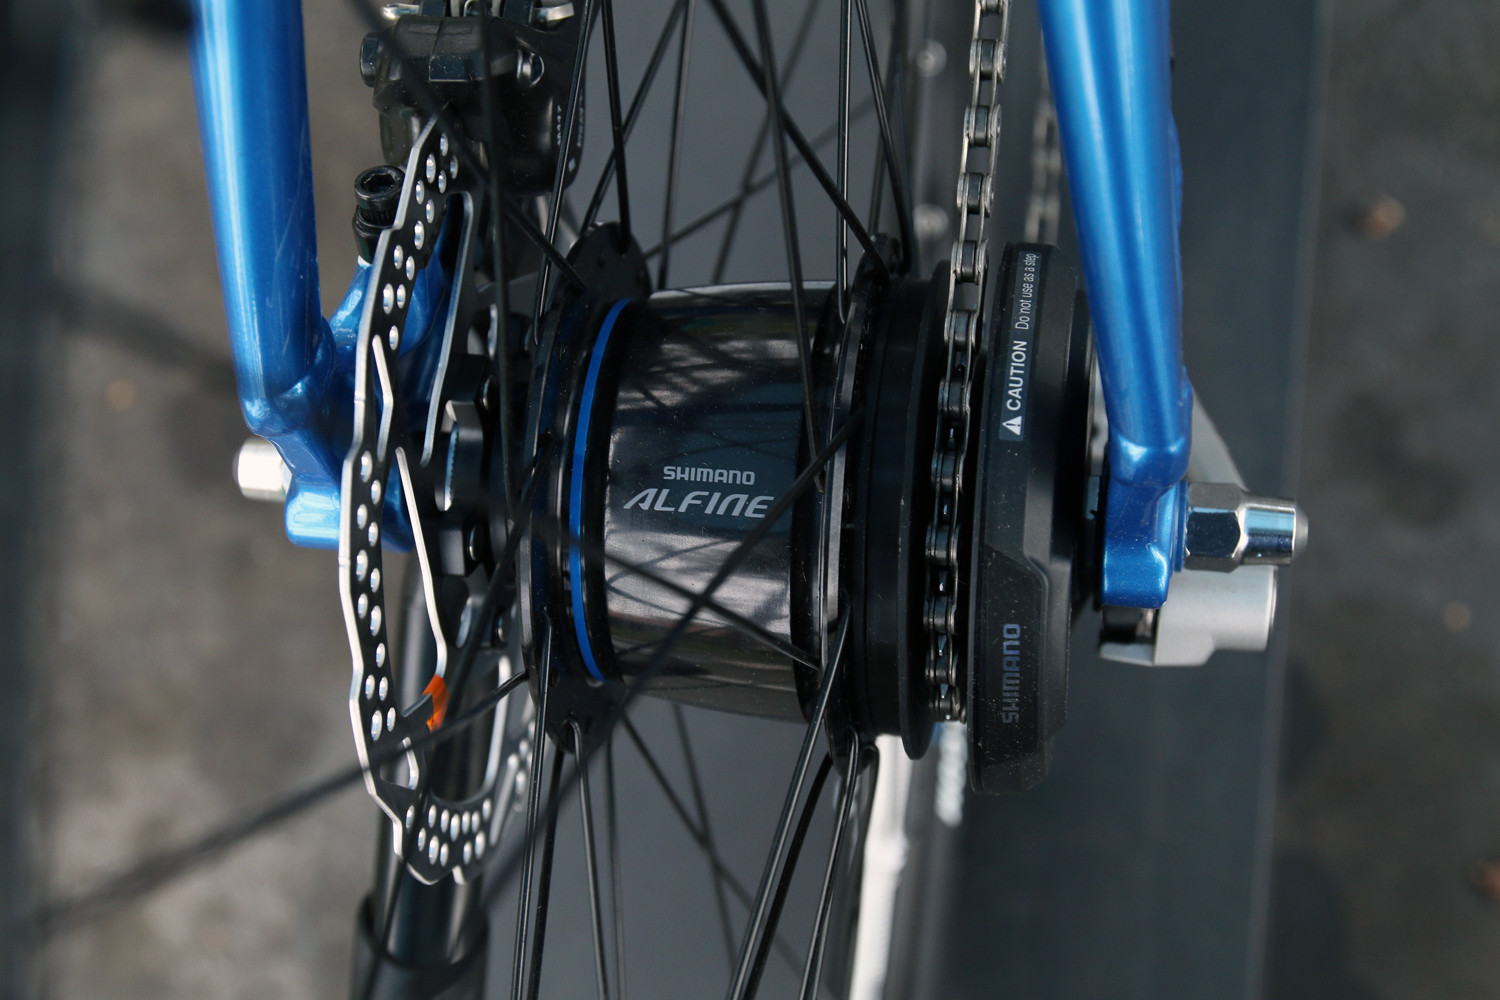 Raleigh Steps Into Premium Ebikes With Shimano Equipped